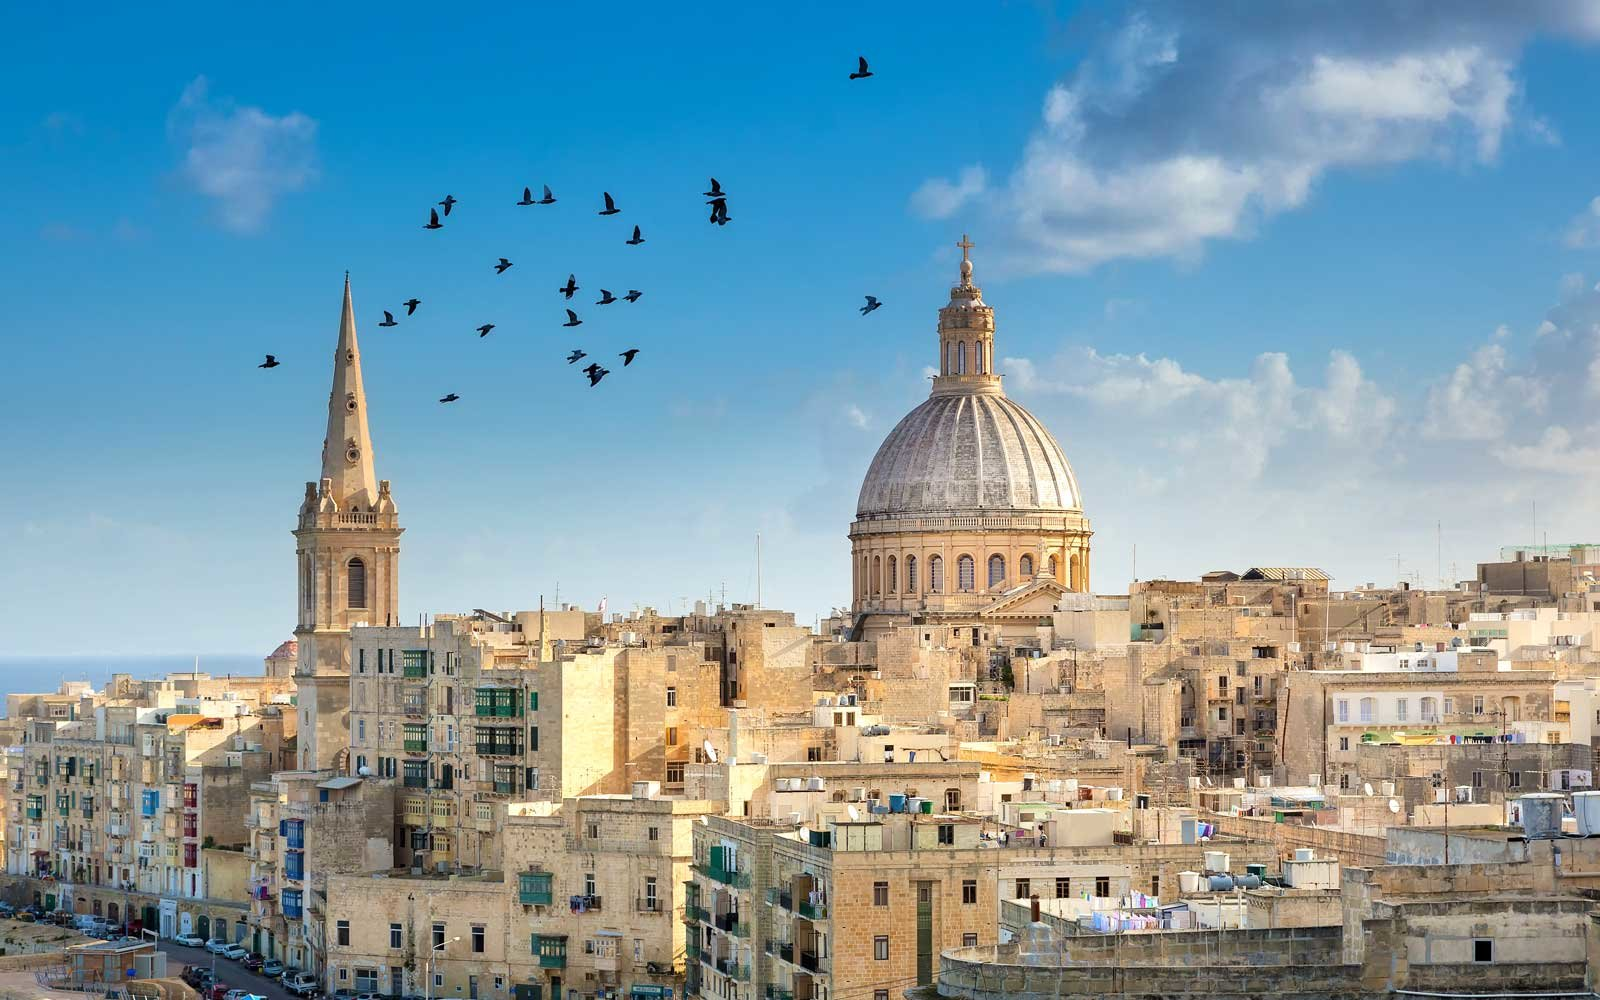 Birds flying over Valetta, Malta